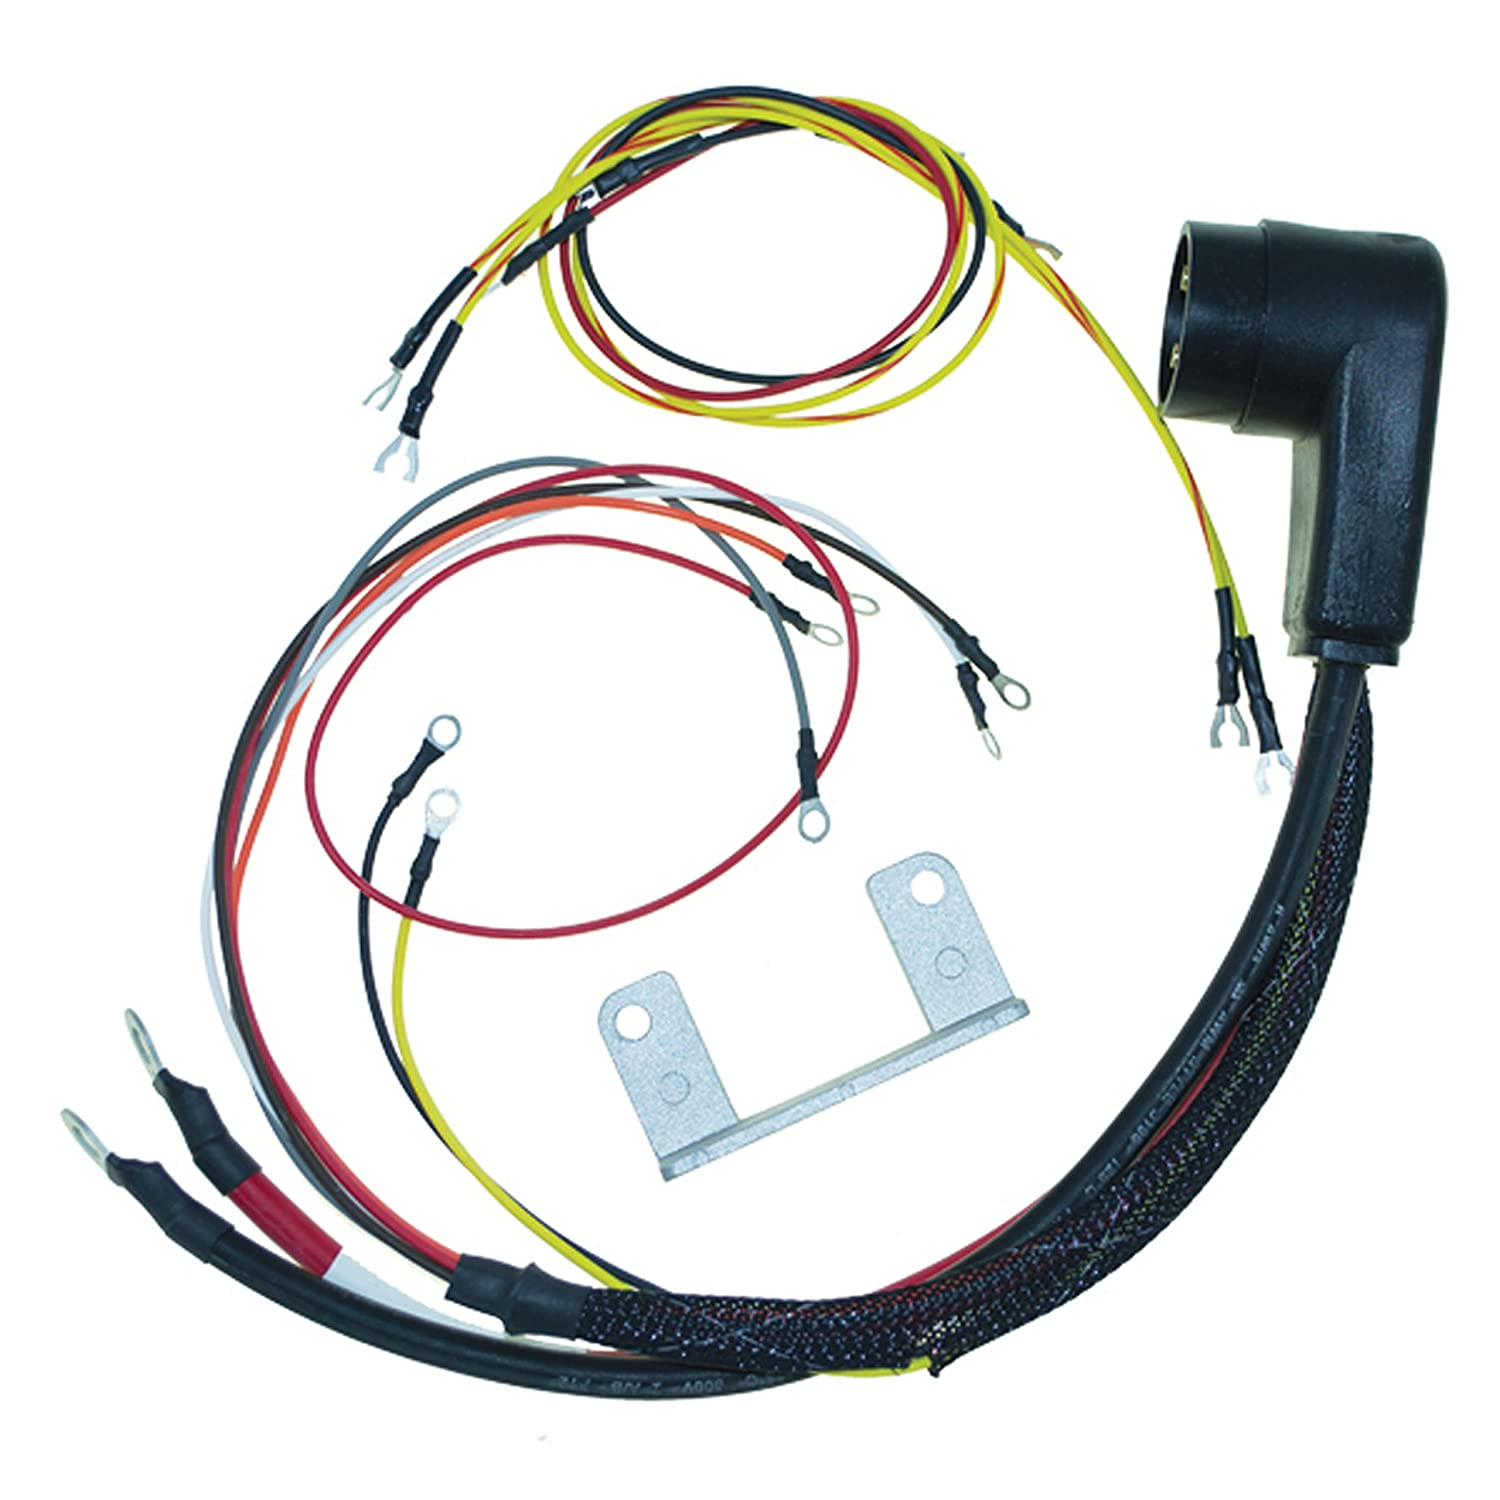 CDI Electronics 414-2770 Mercury/Mariner Wiring Harness-2/4/6 Cyl. (1966-1981) Boating Accessories